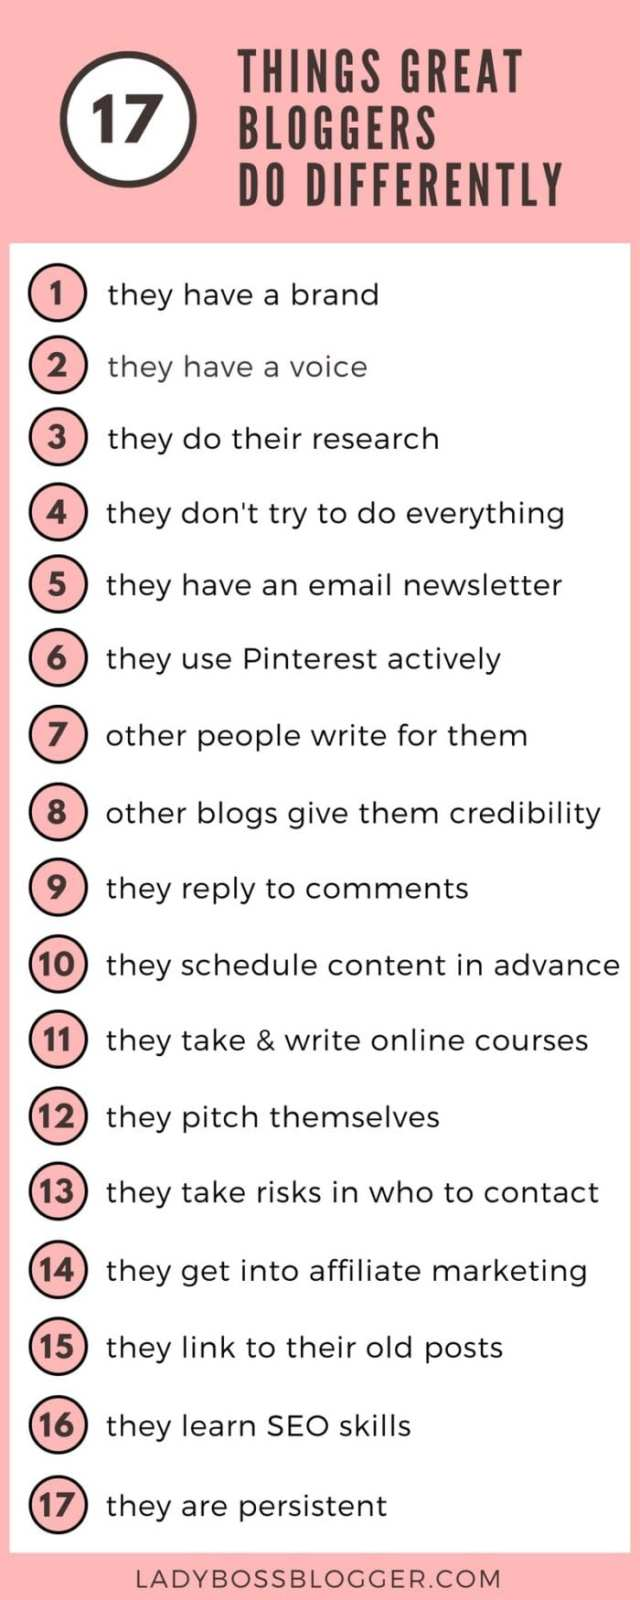 17 things great bloggers do differently on ladybossblogger.com